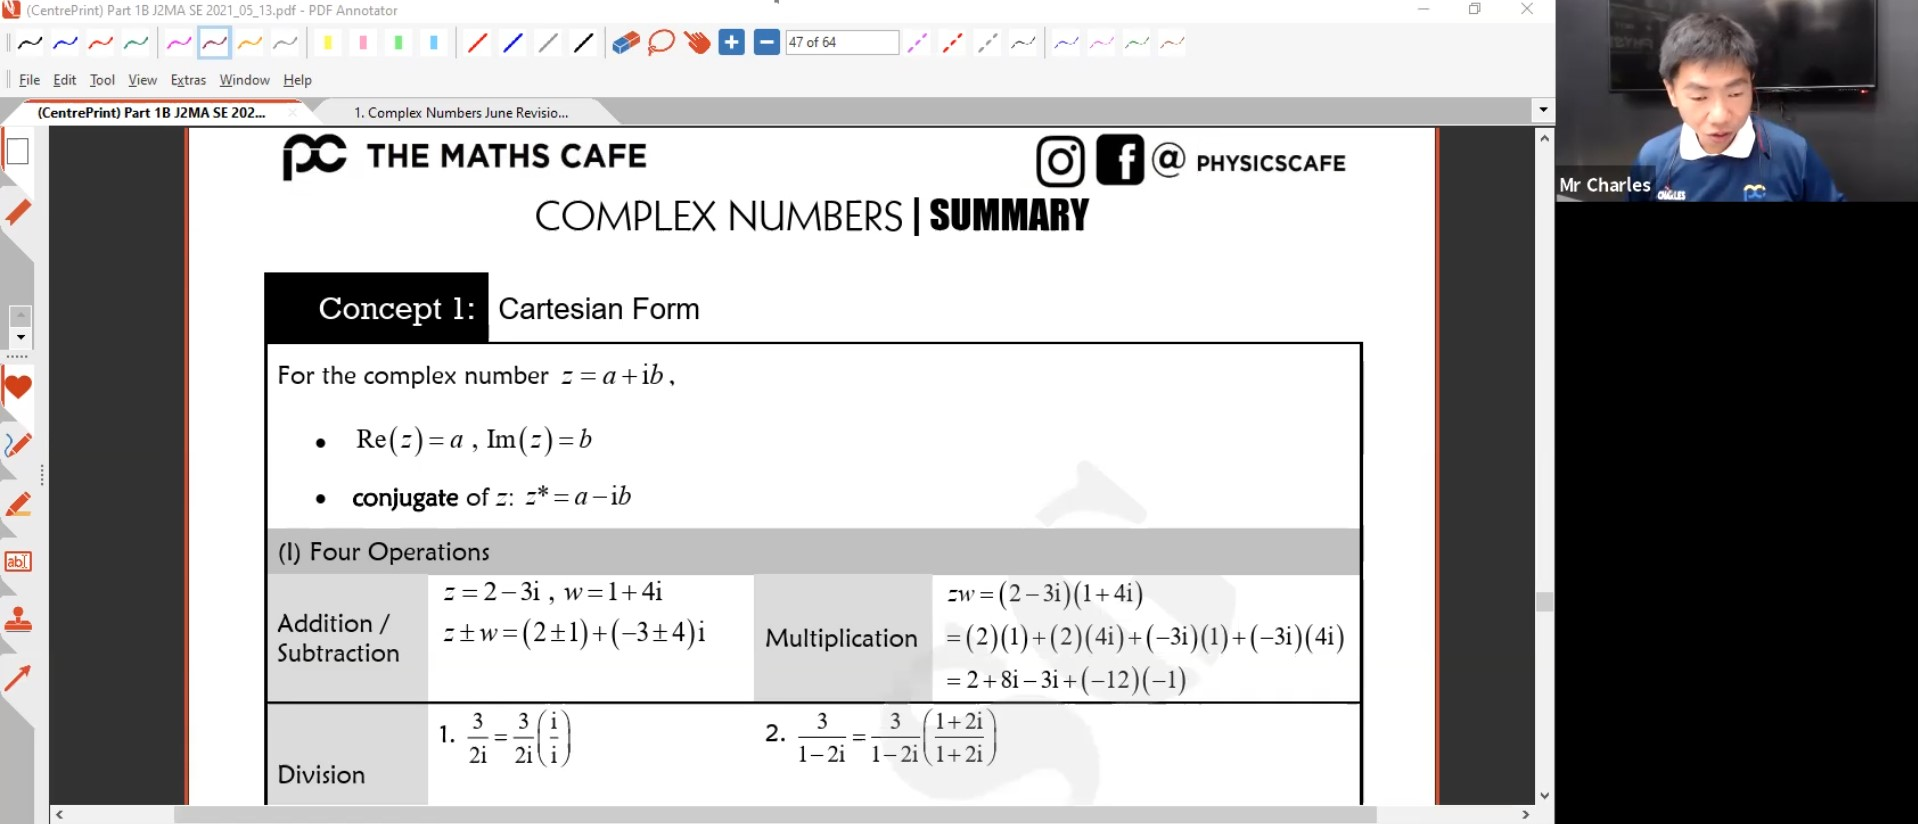 25. June Revision : Complex Numbers